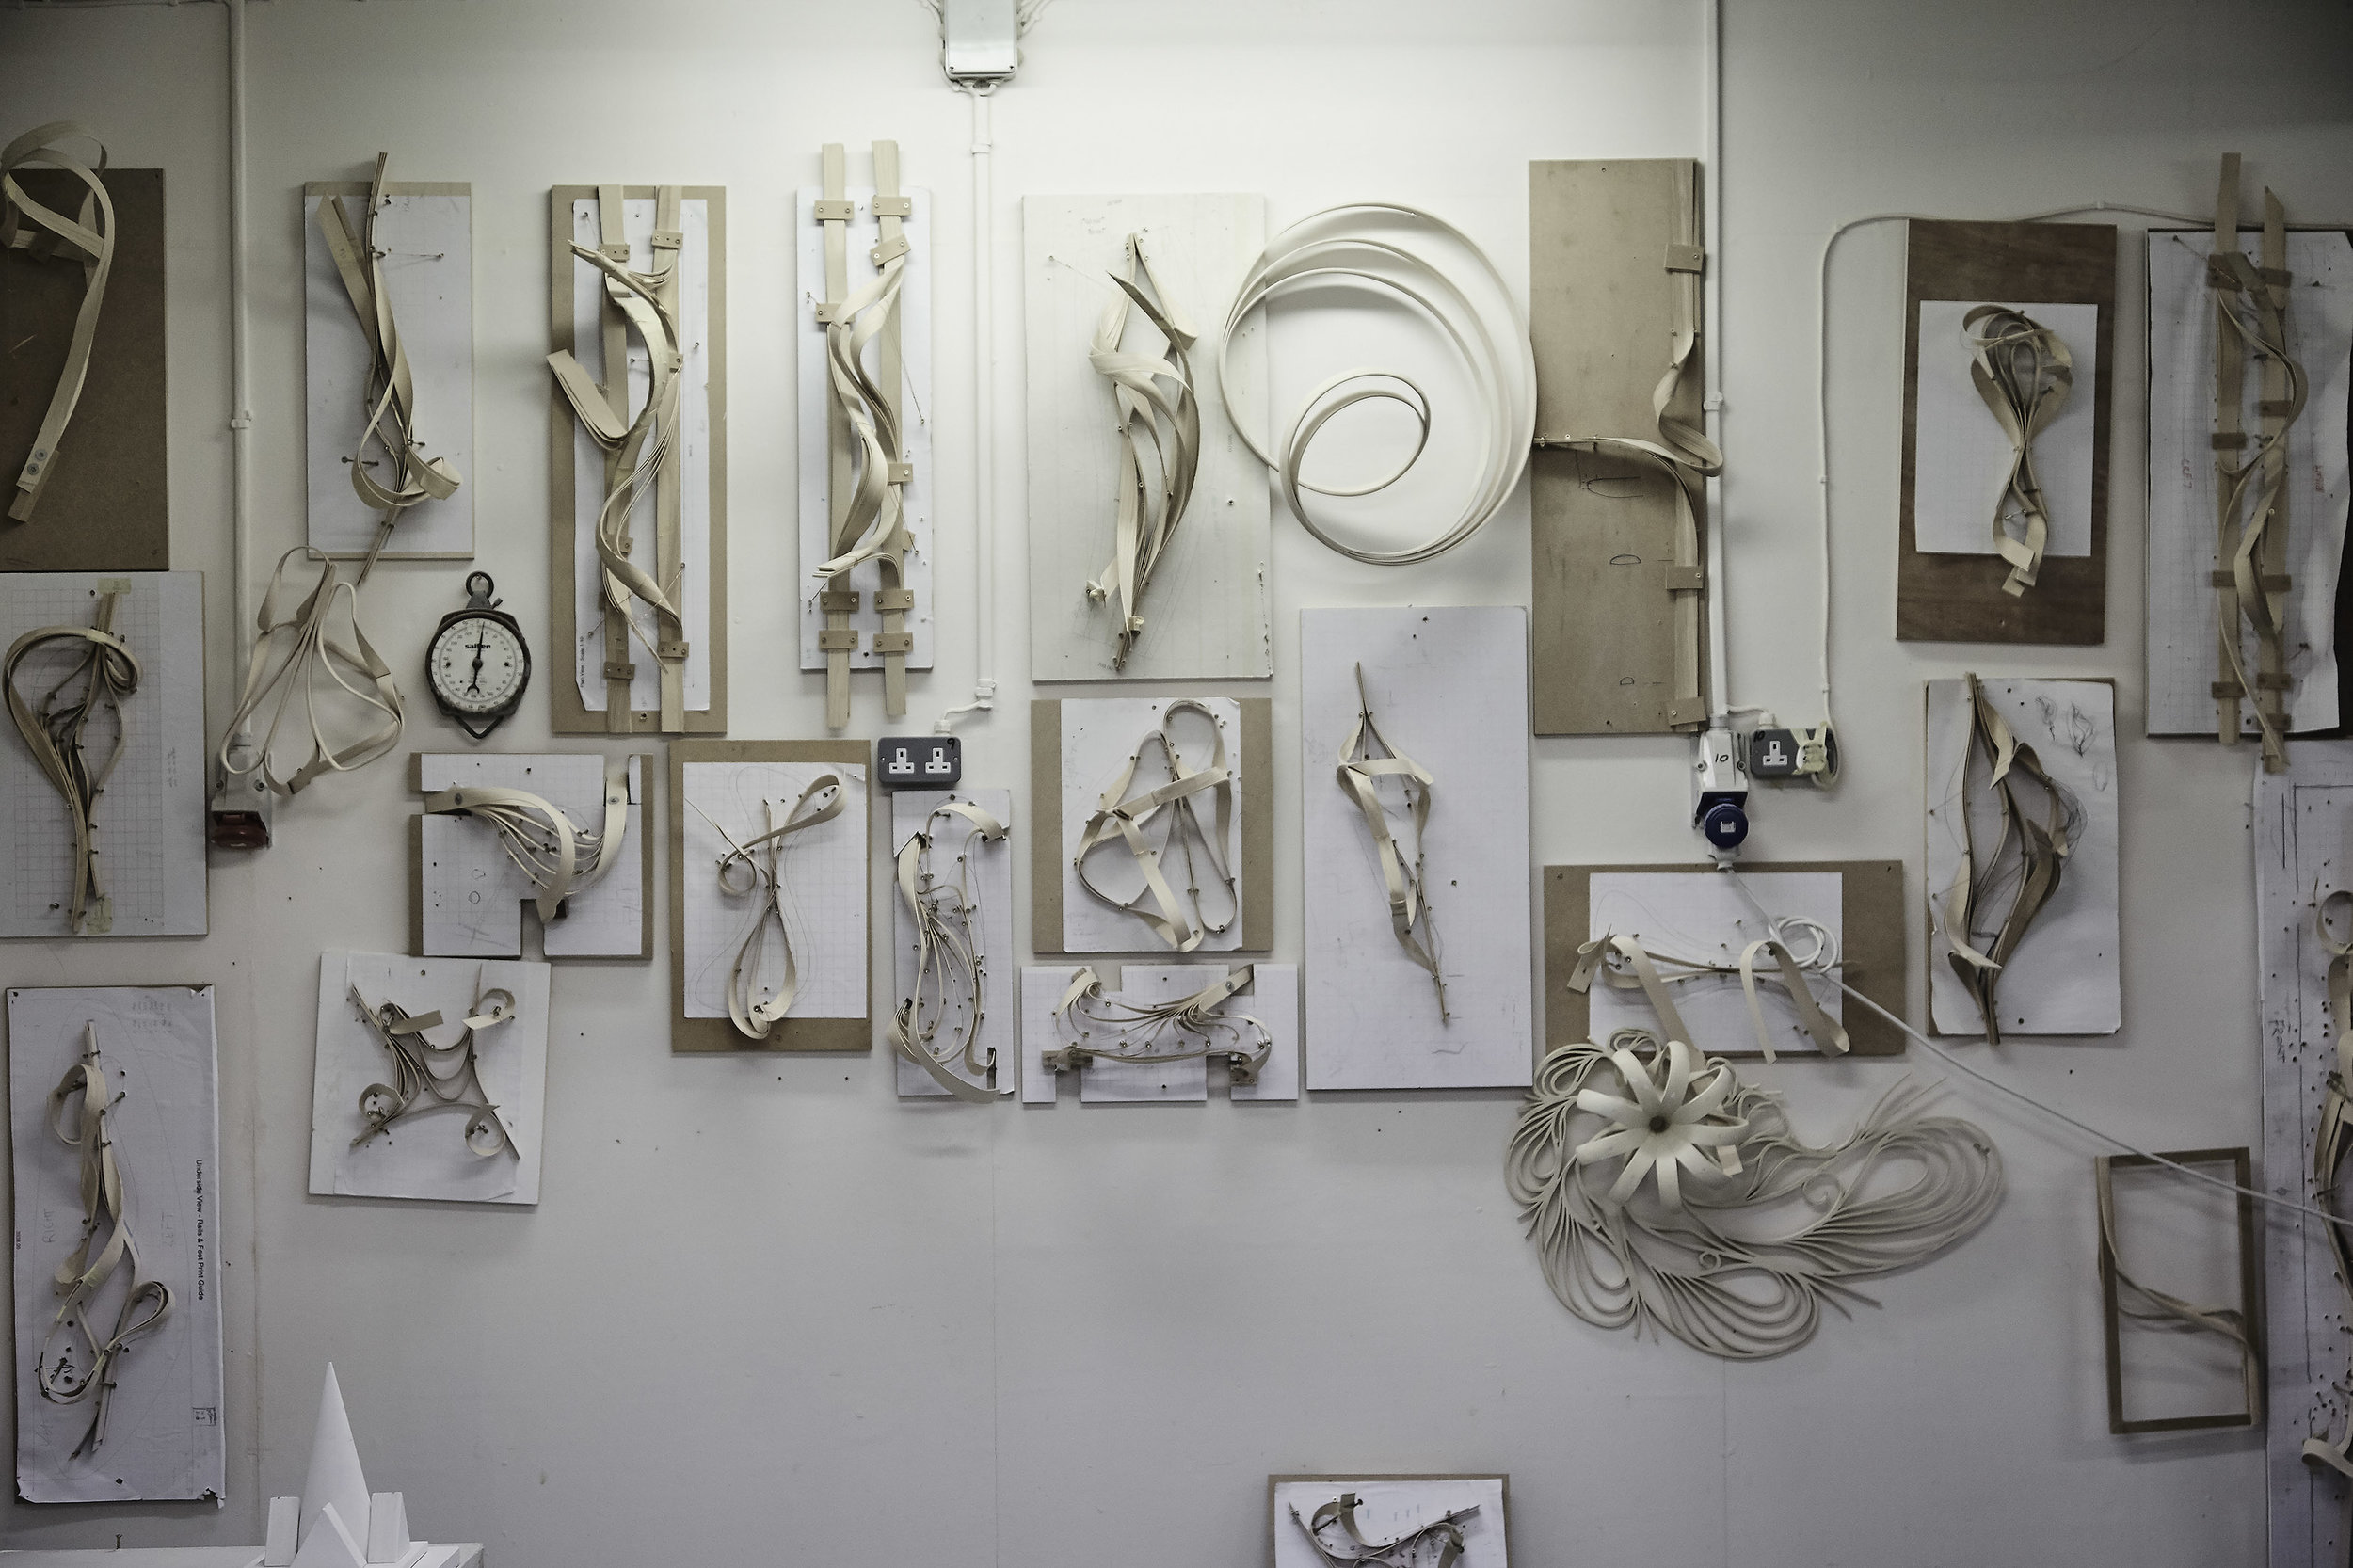 Sketch Models - image by Andrew Bradley